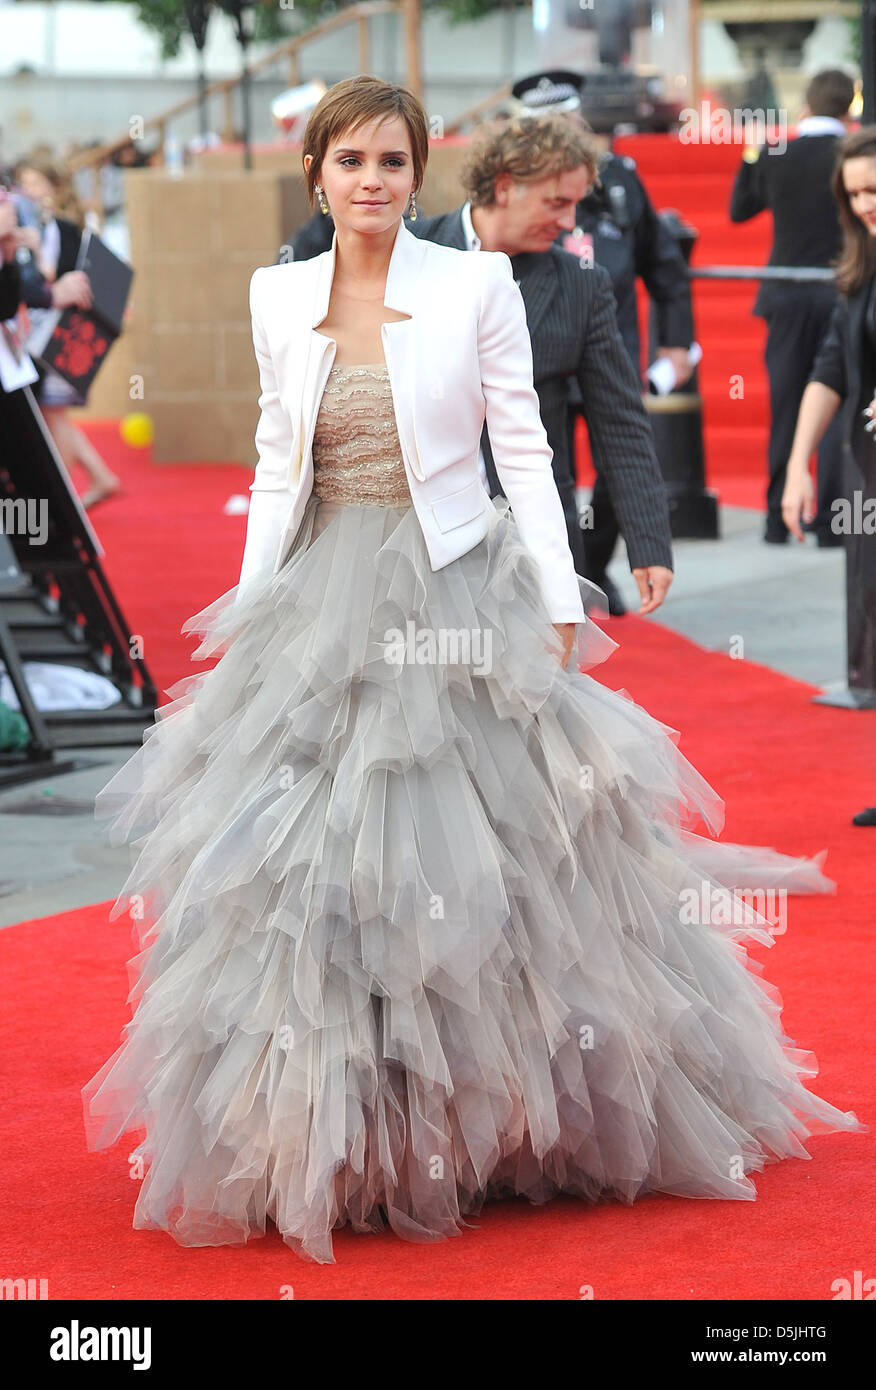 Emma Watson Harry Potter And The Deathly Hallows Part 2 Premiere Dress Emma Watson loses part...